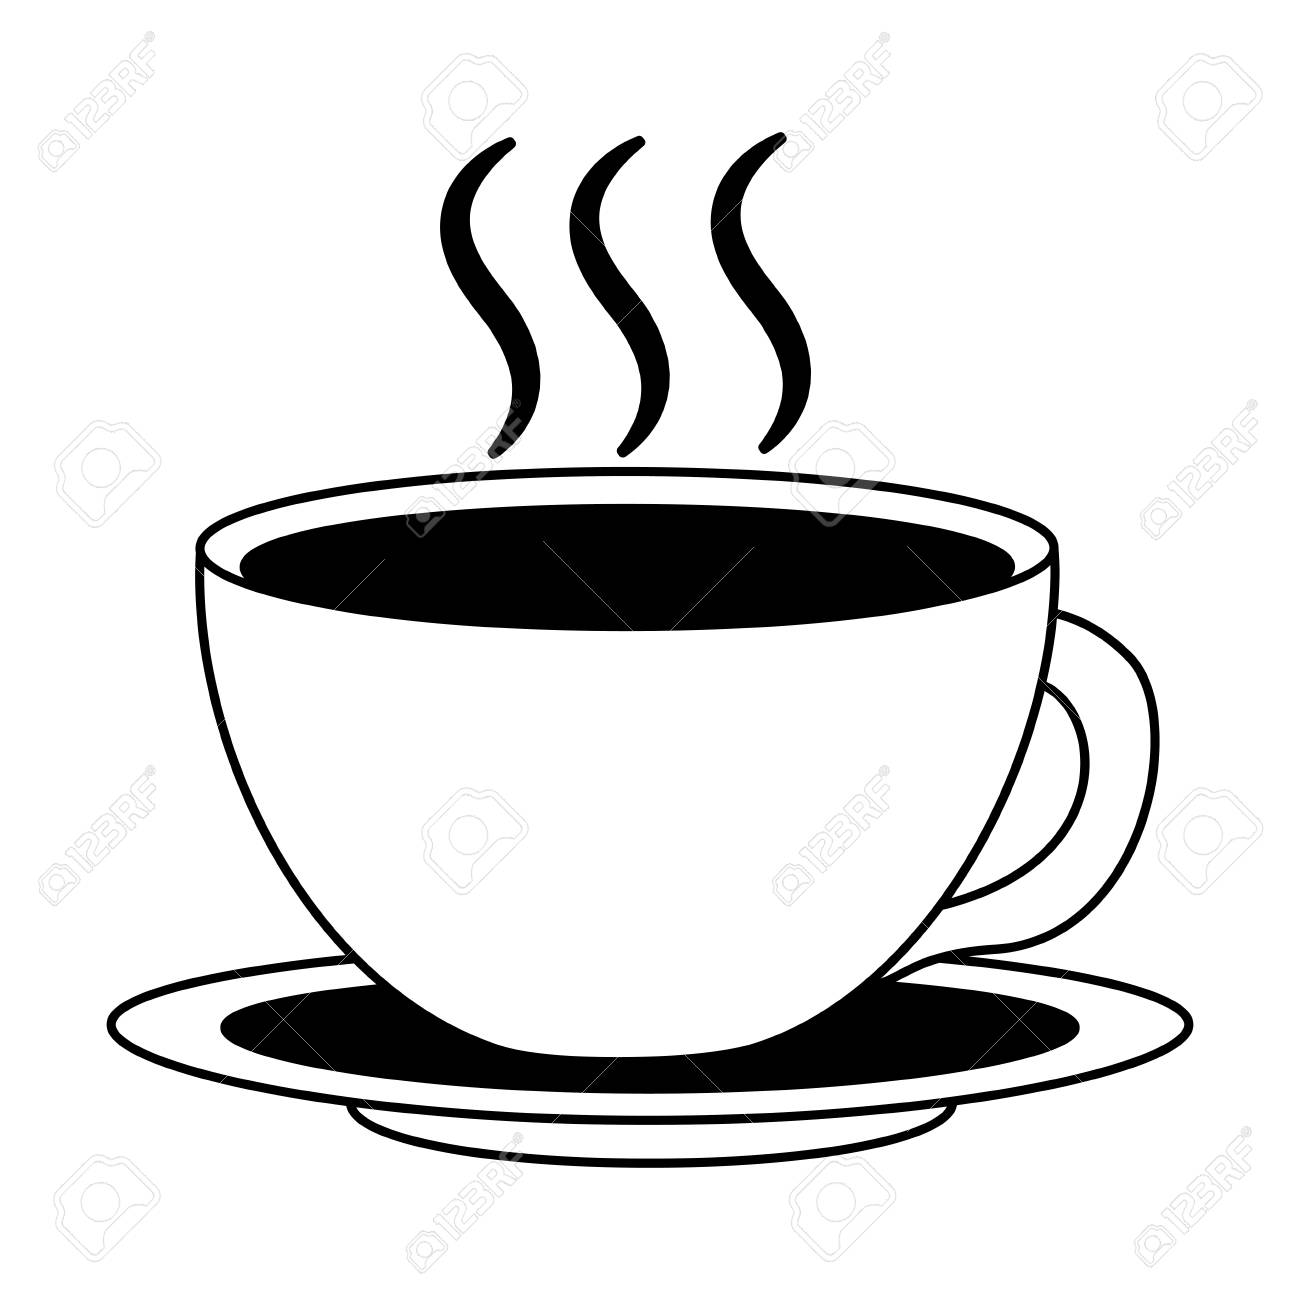 Coffee Cup Hot Fresh Aroma On Saucer Vector Illustration Black Royalty Free Cliparts Vectors And Stock Illustration Image 102504827